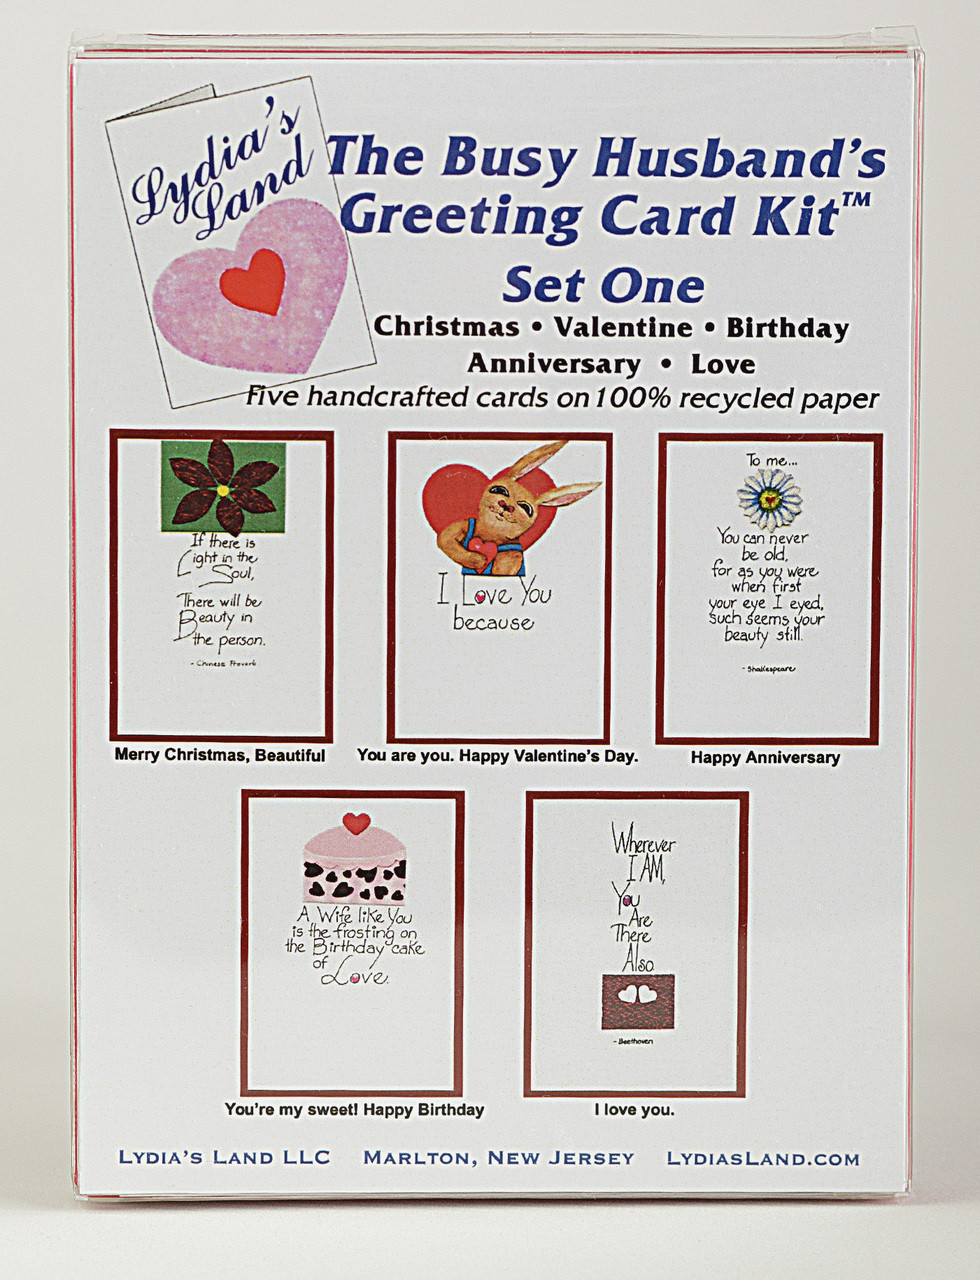 d7ac91124d65f The Busy Husband's Greeting Card Kit Set One